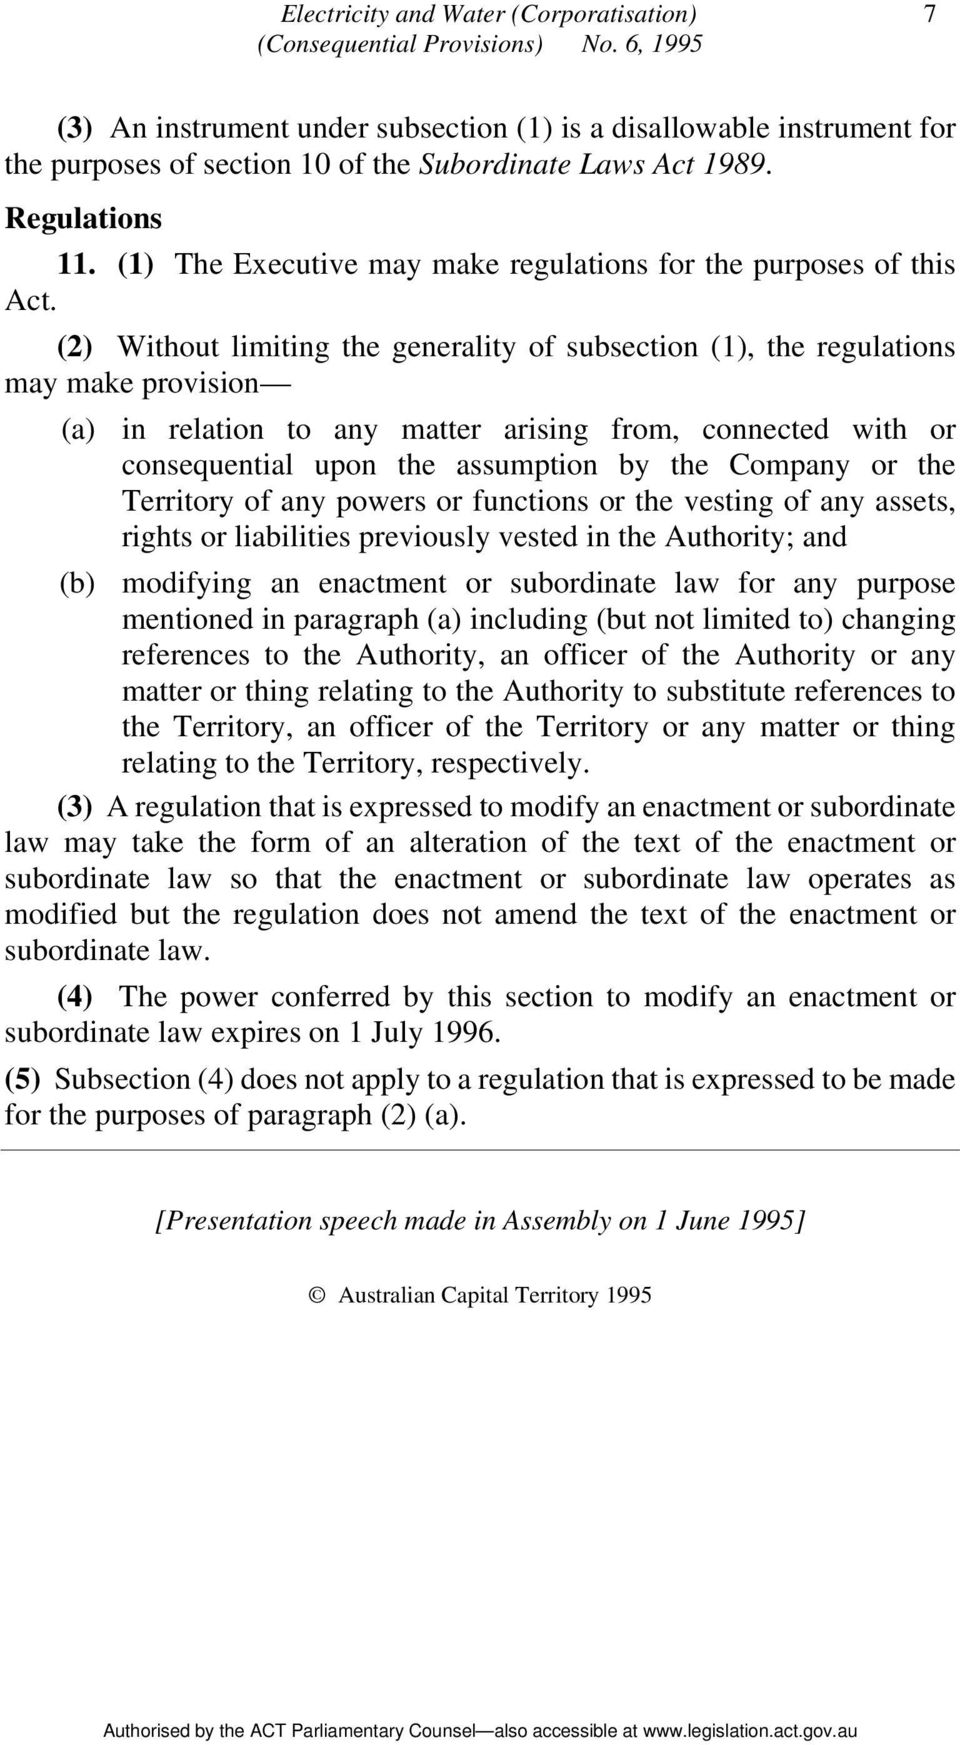 (2) Without limiting the generality of subsection (1), the regulations may make provision (a) in relation to any matter arising from, connected with or consequential upon the assumption by the